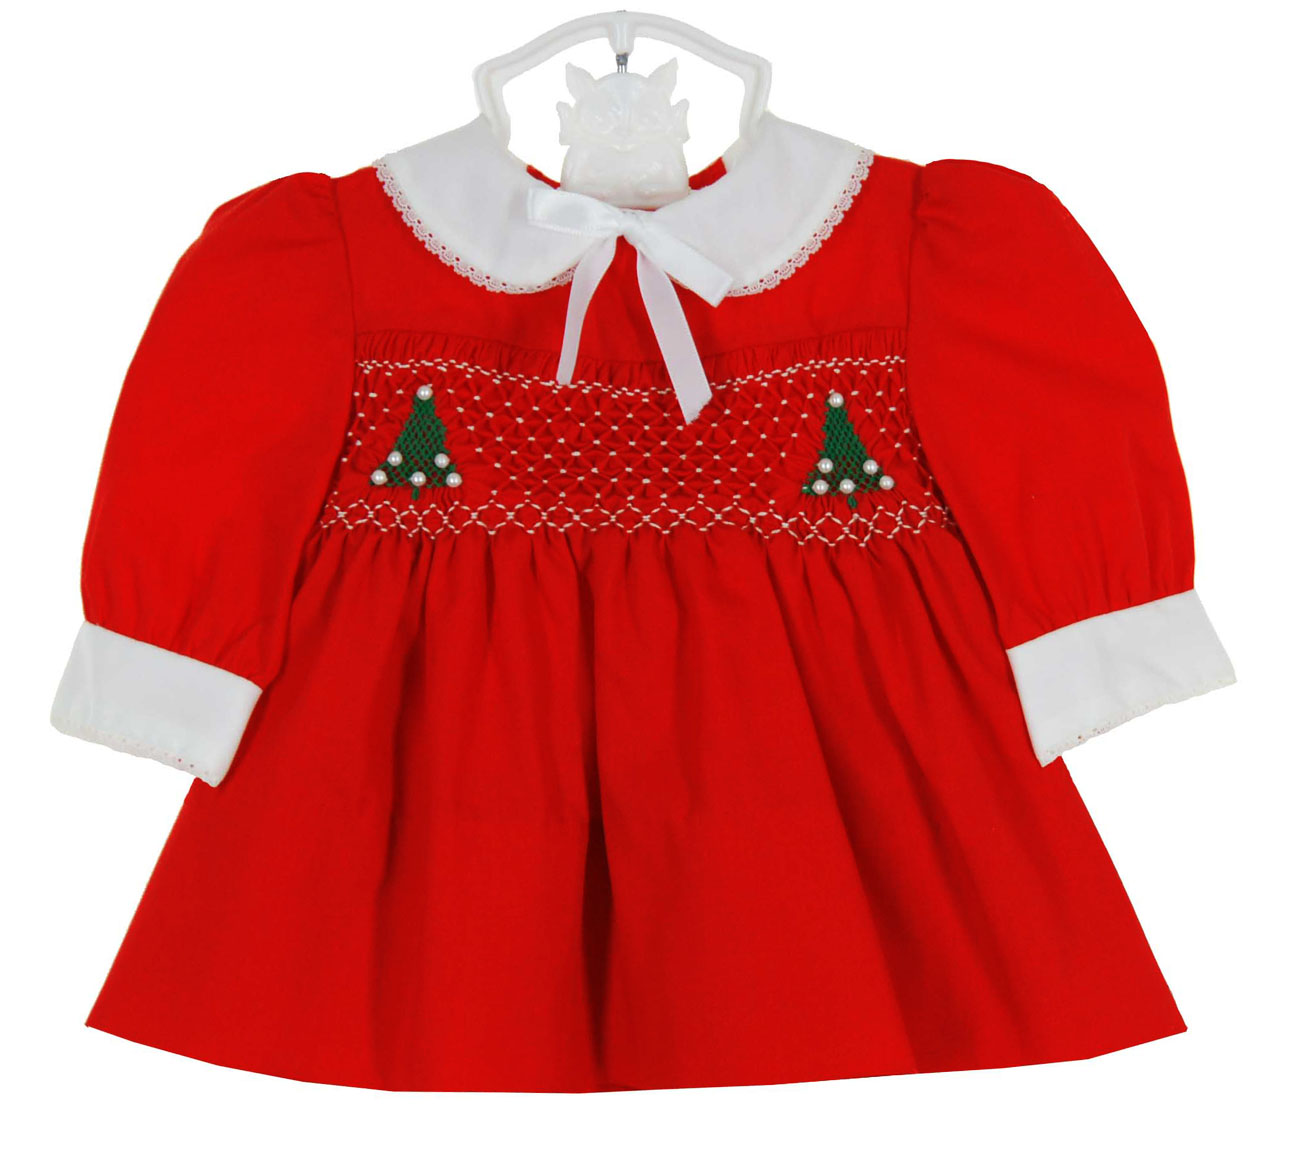 Polly Flinders Christmas Baby Dresses Polly Flinders Christmas Toddler Dresses Polly Flinders